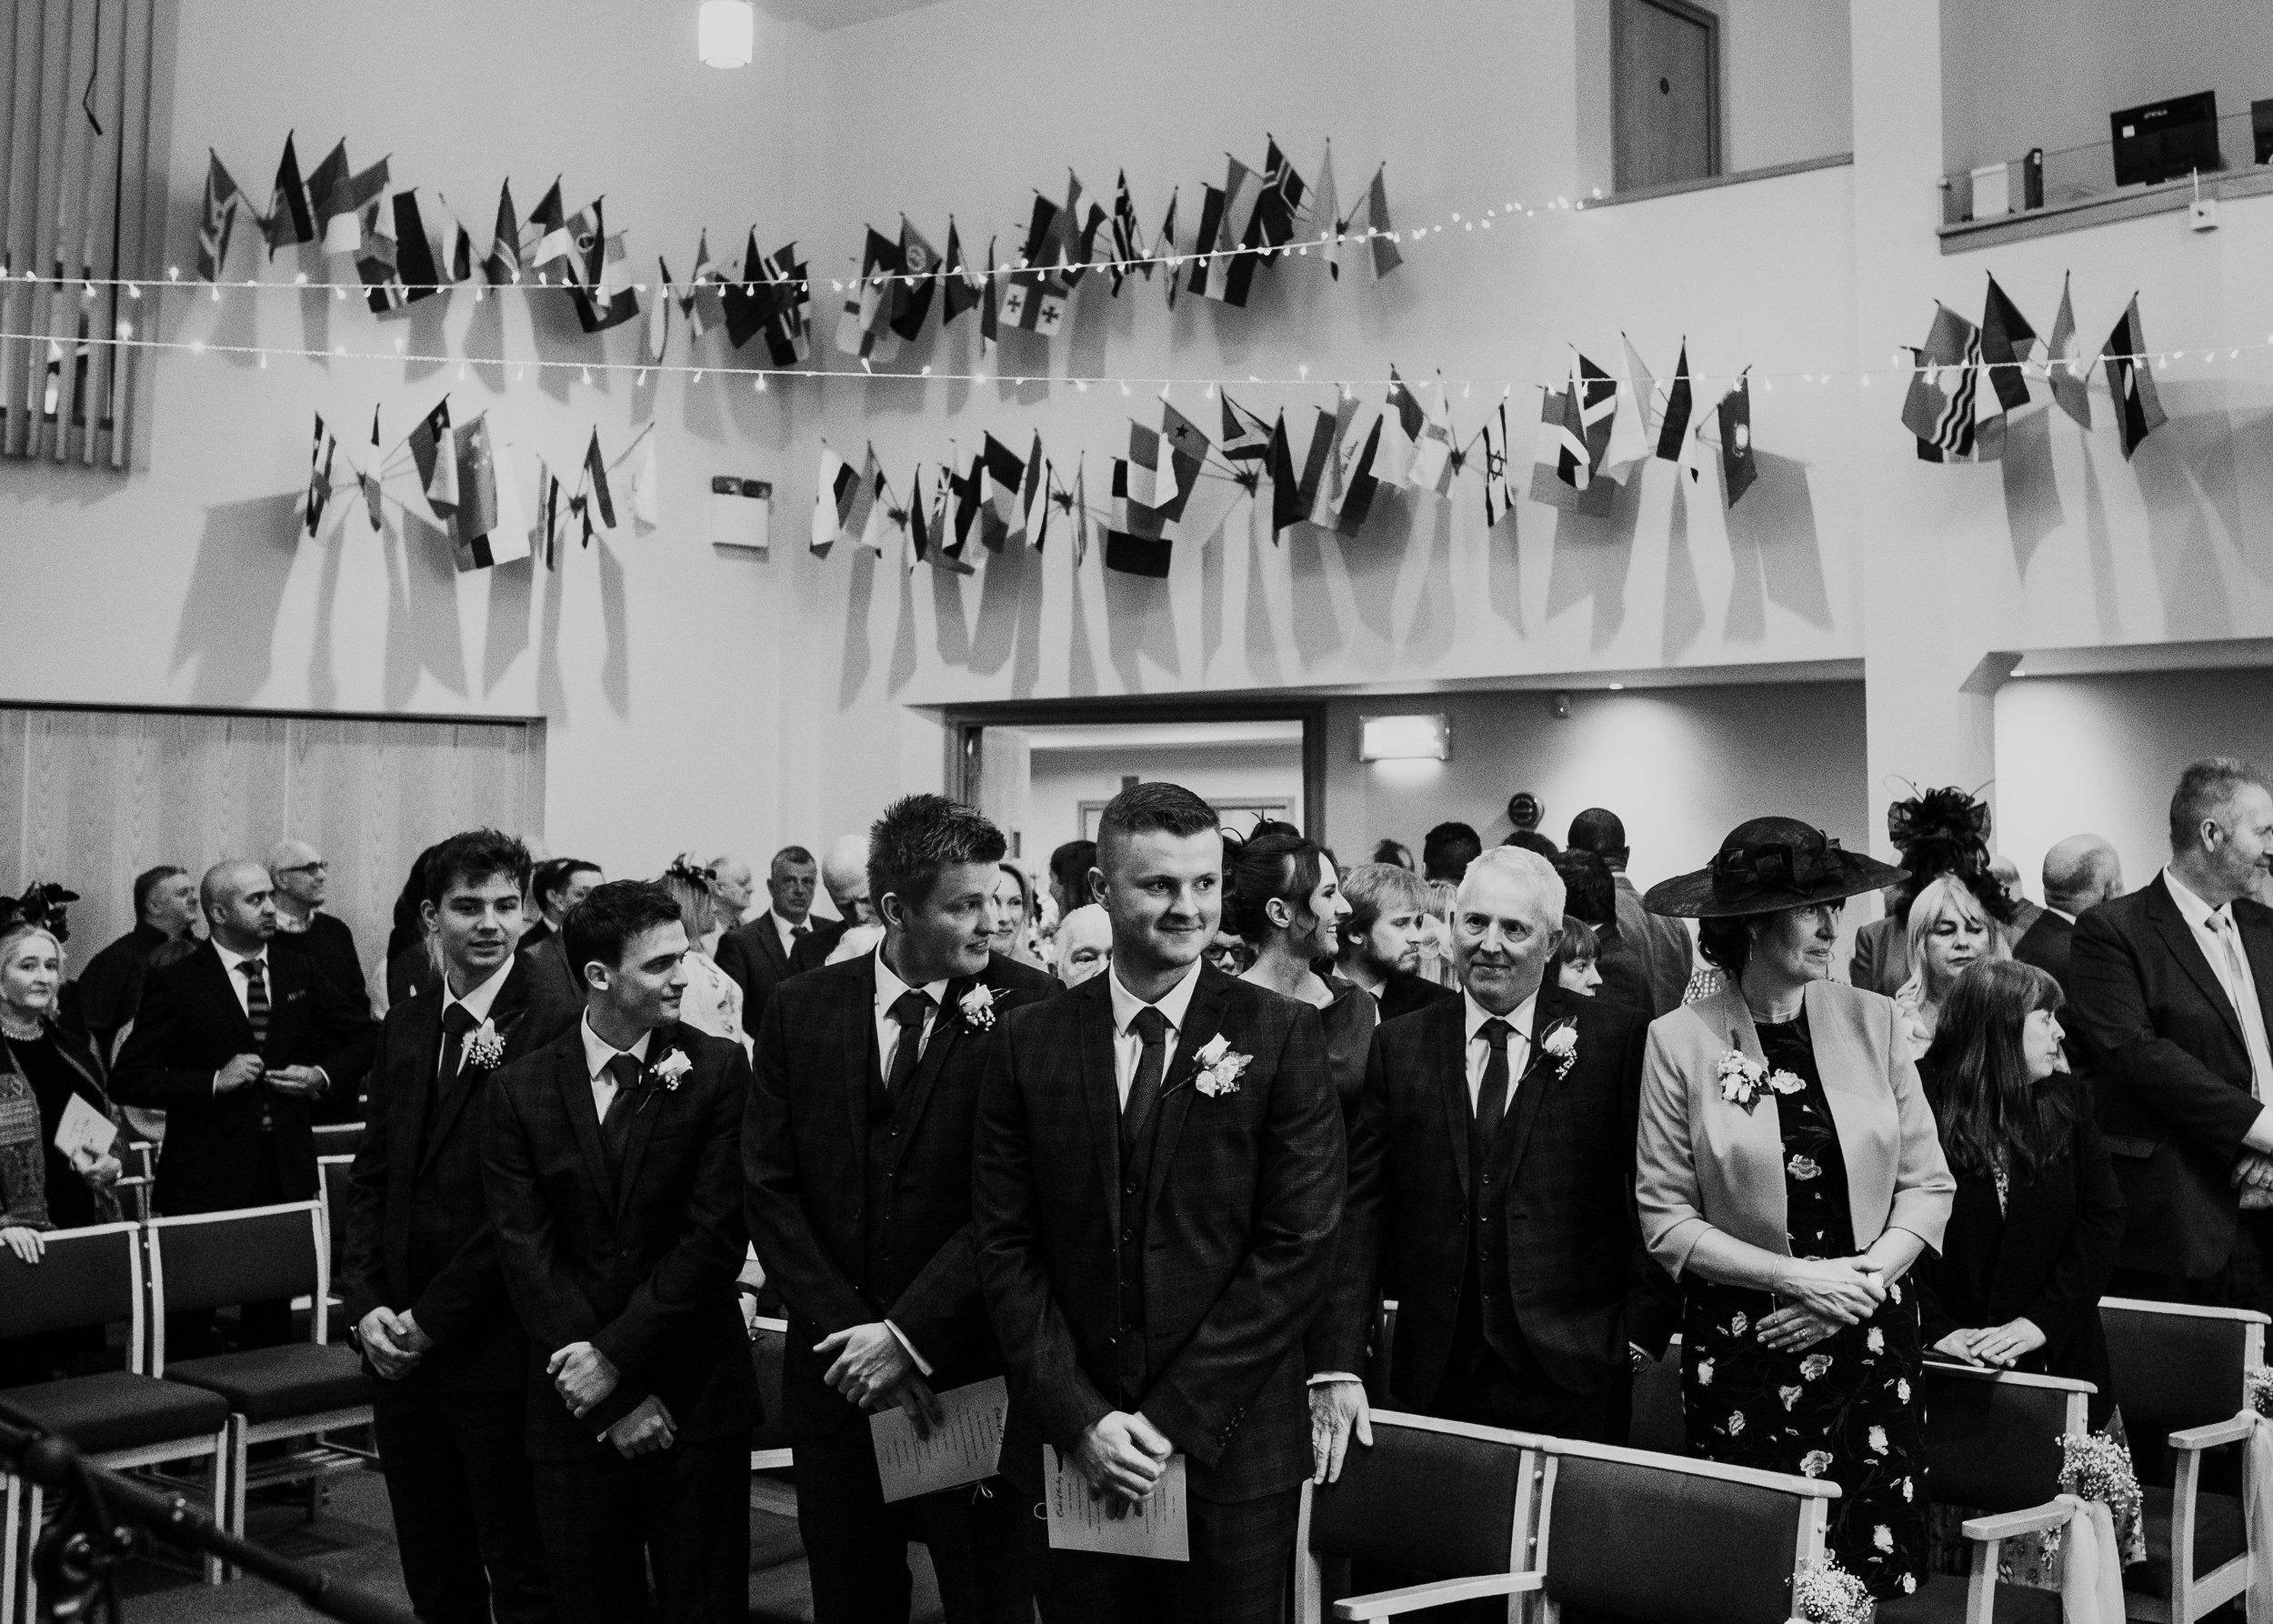 Groom and groomsmen wait for bride in the church